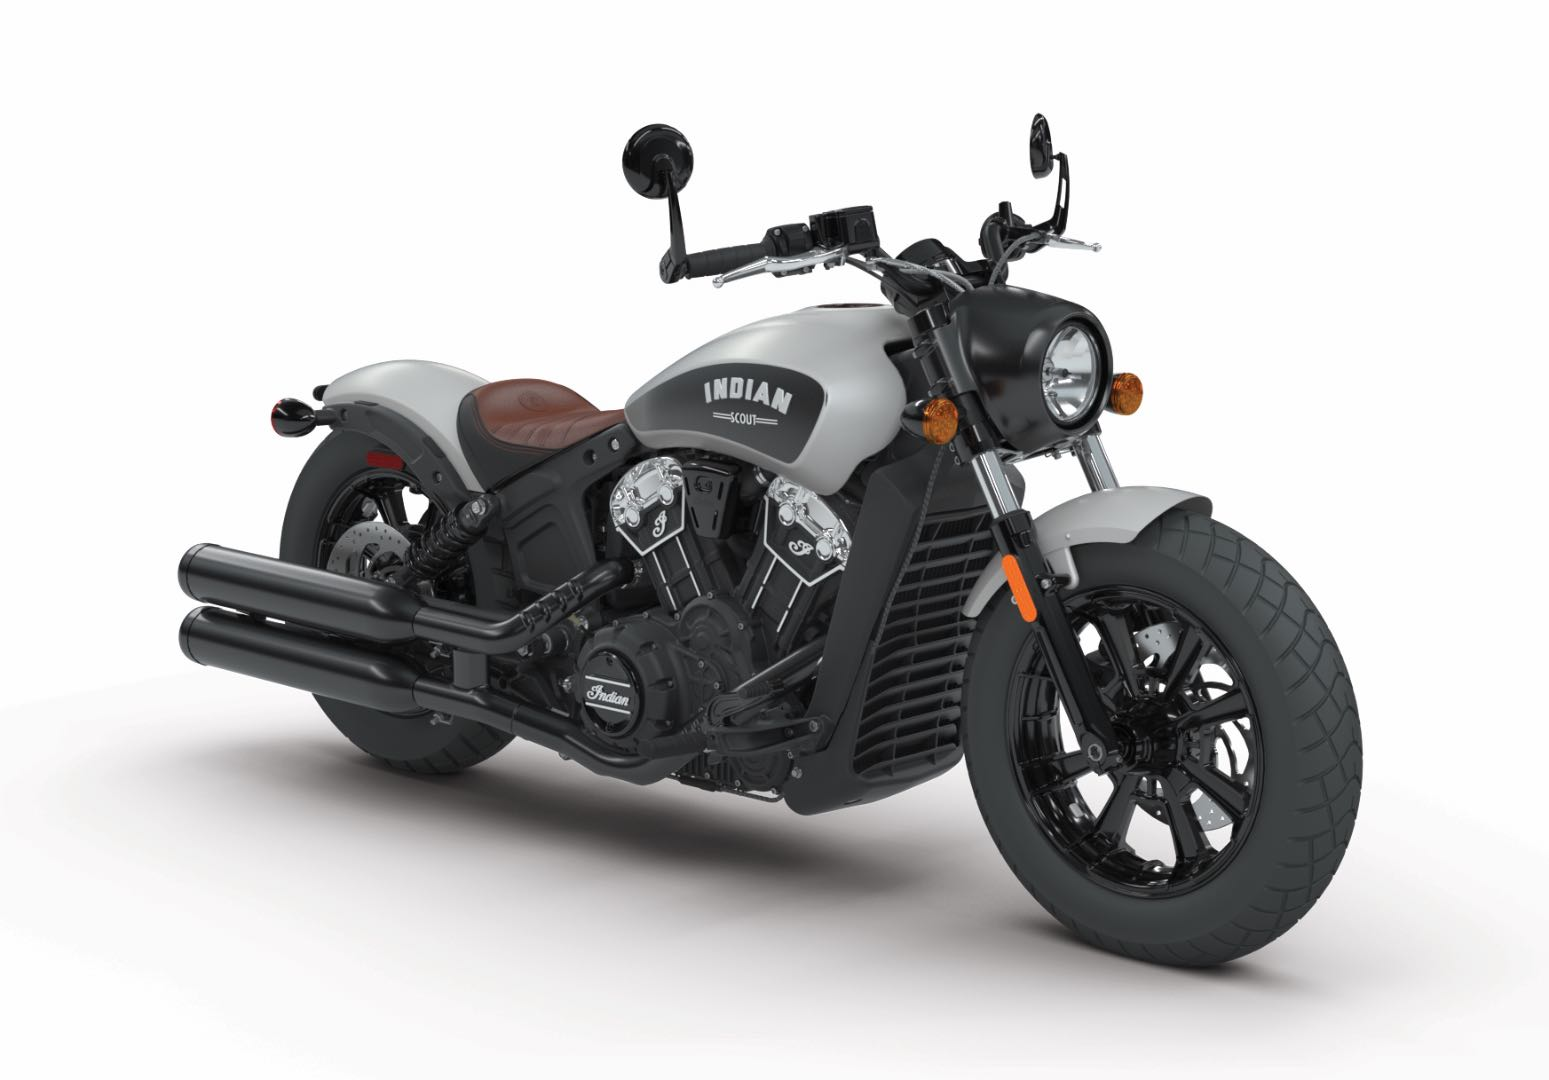 Raw, Stealthy Indian Scout Bobber Unveiled: Details and Images Inside